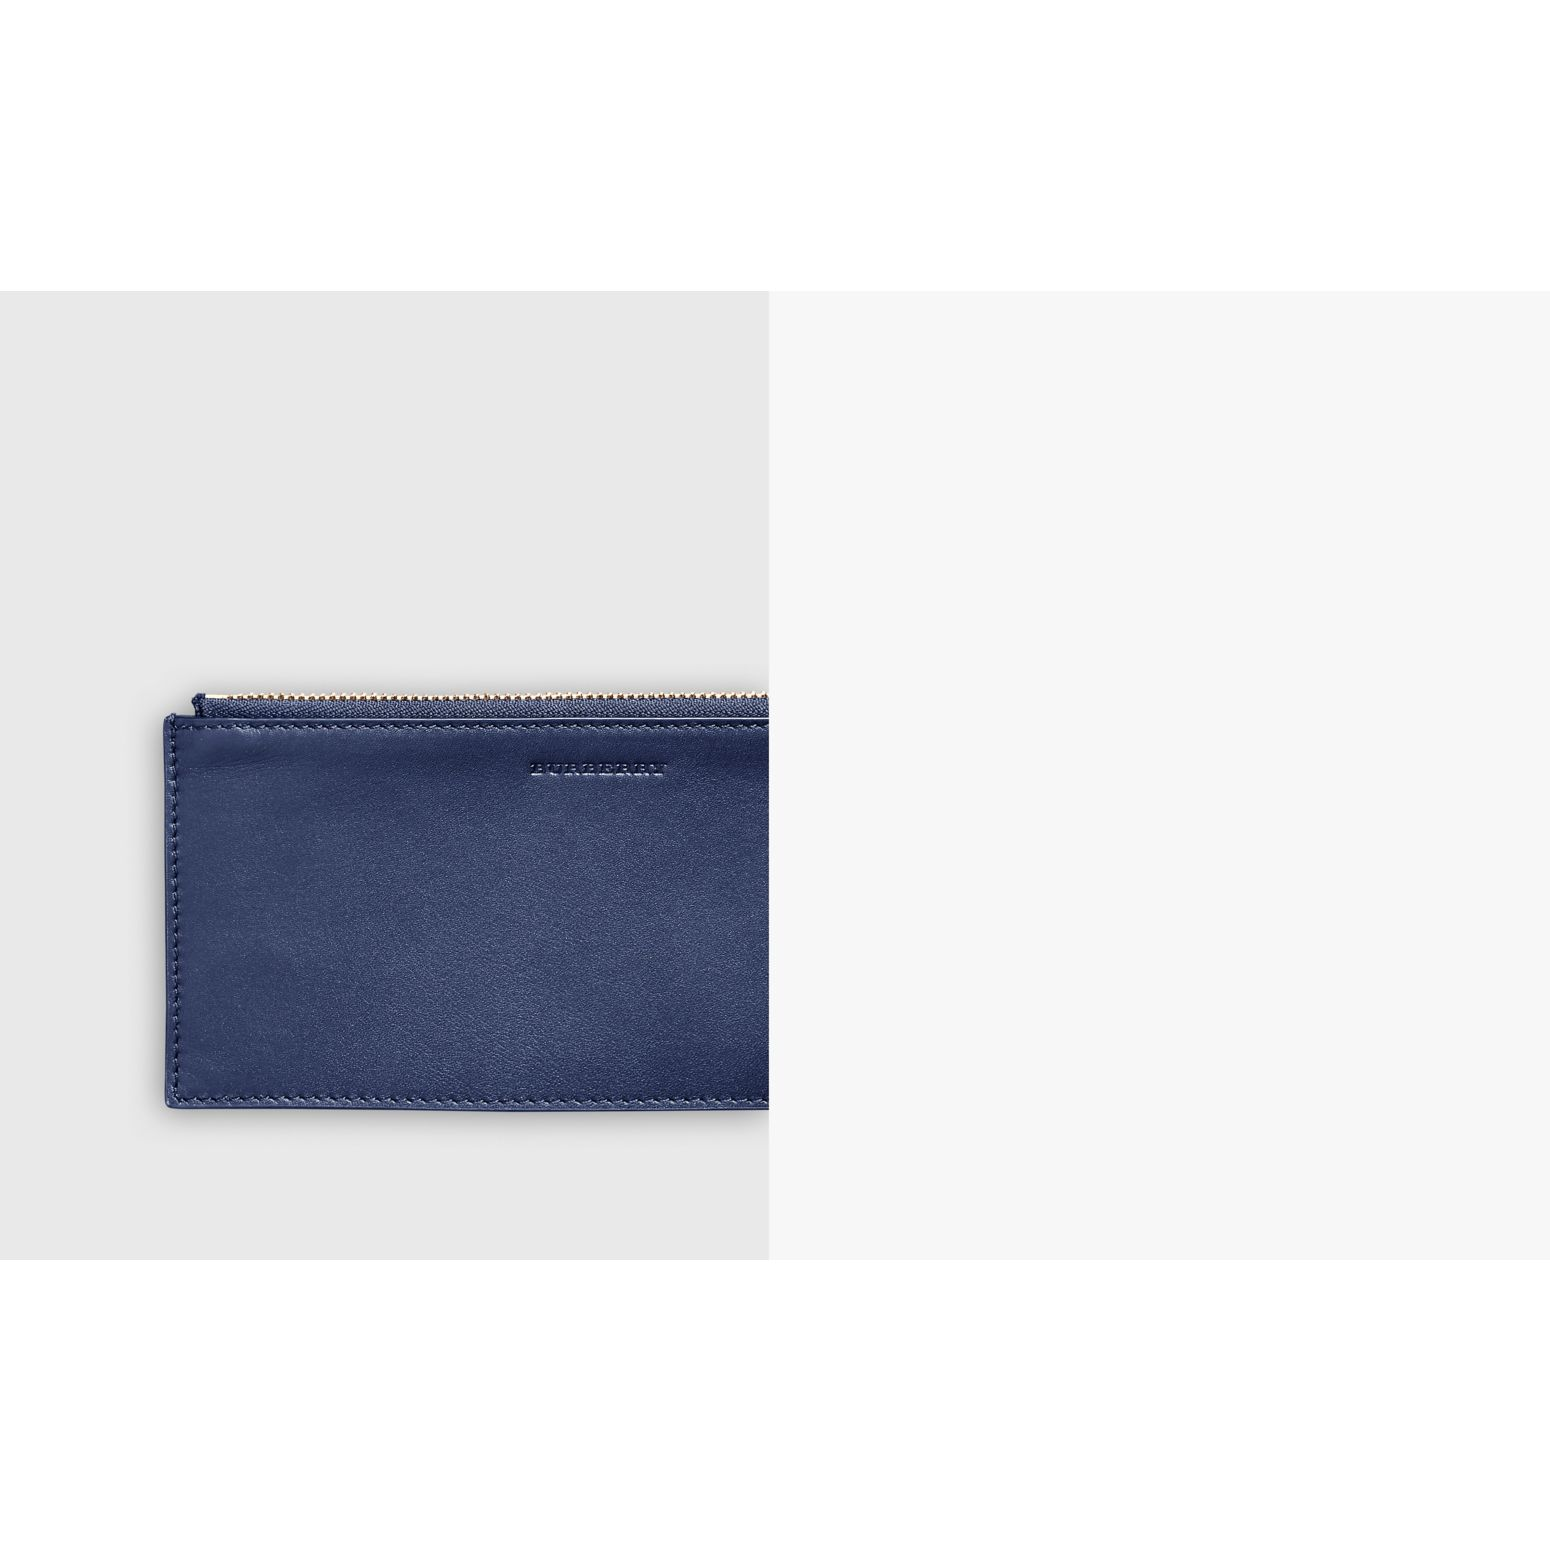 1983 Check and Leather Travel Wallet in Ink Blue - Men | Burberry Australia - gallery image 1